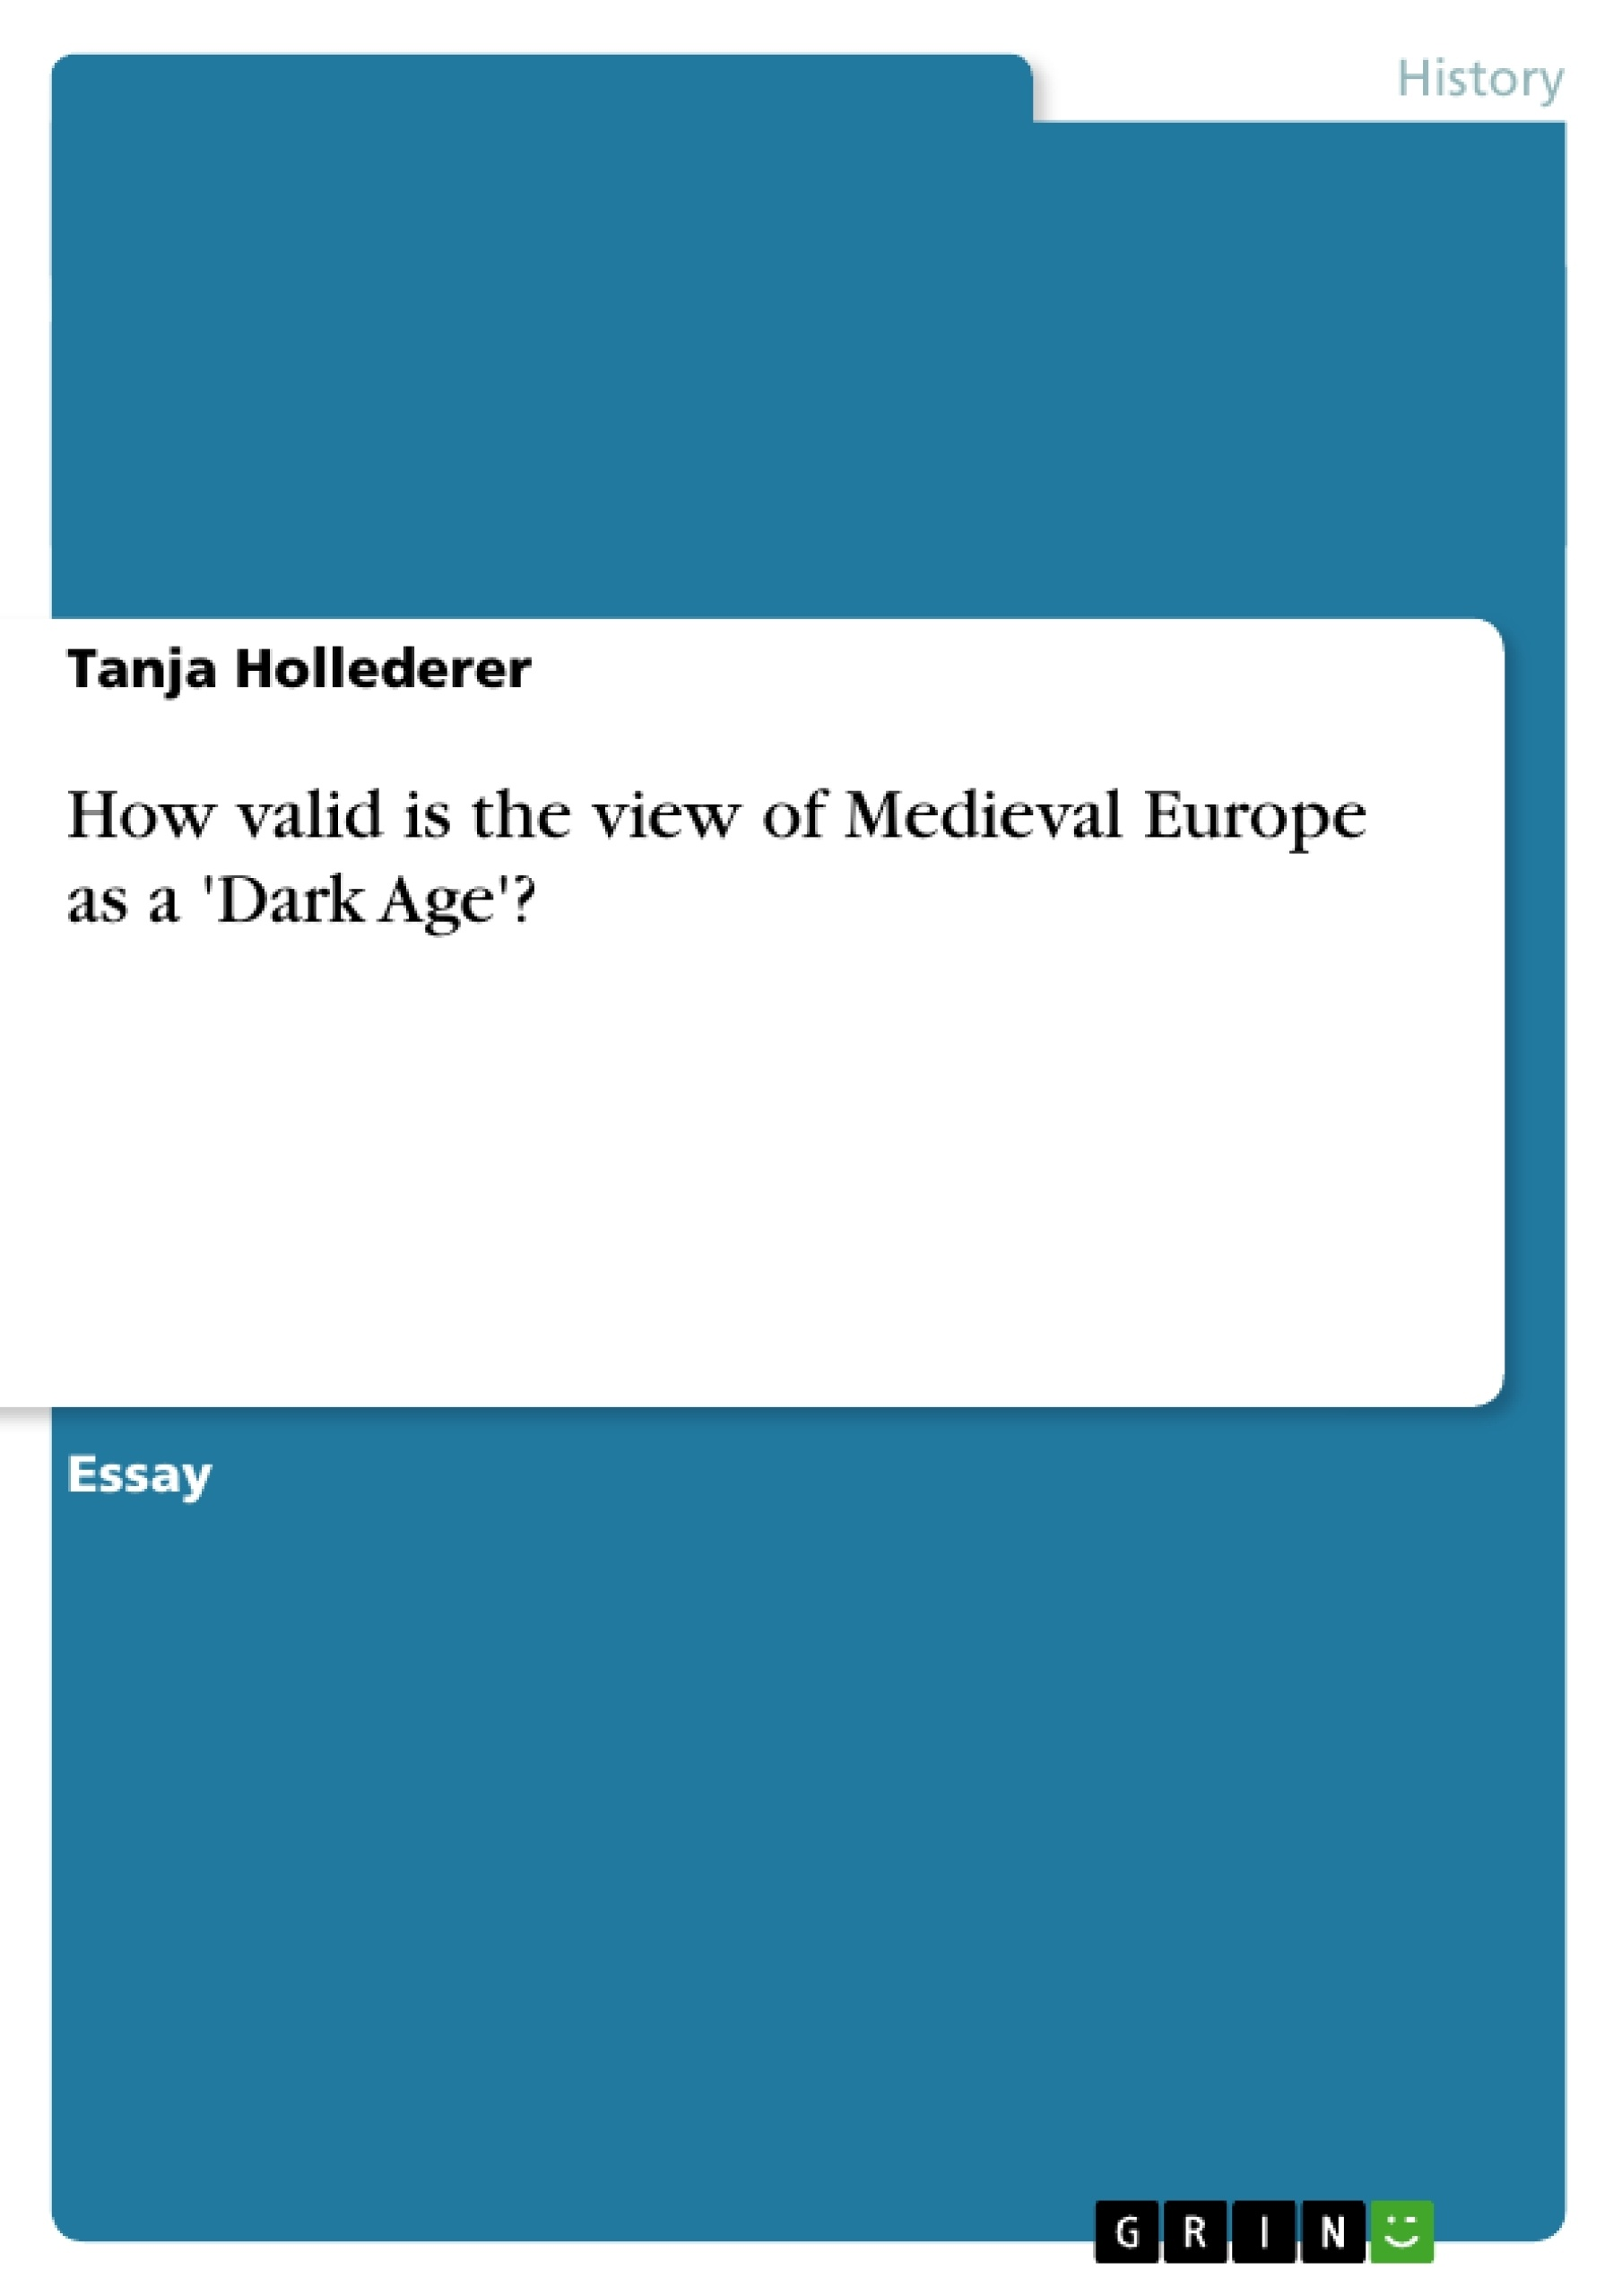 essay on the dark age View greek dark ages research papers on academiaedu for free.